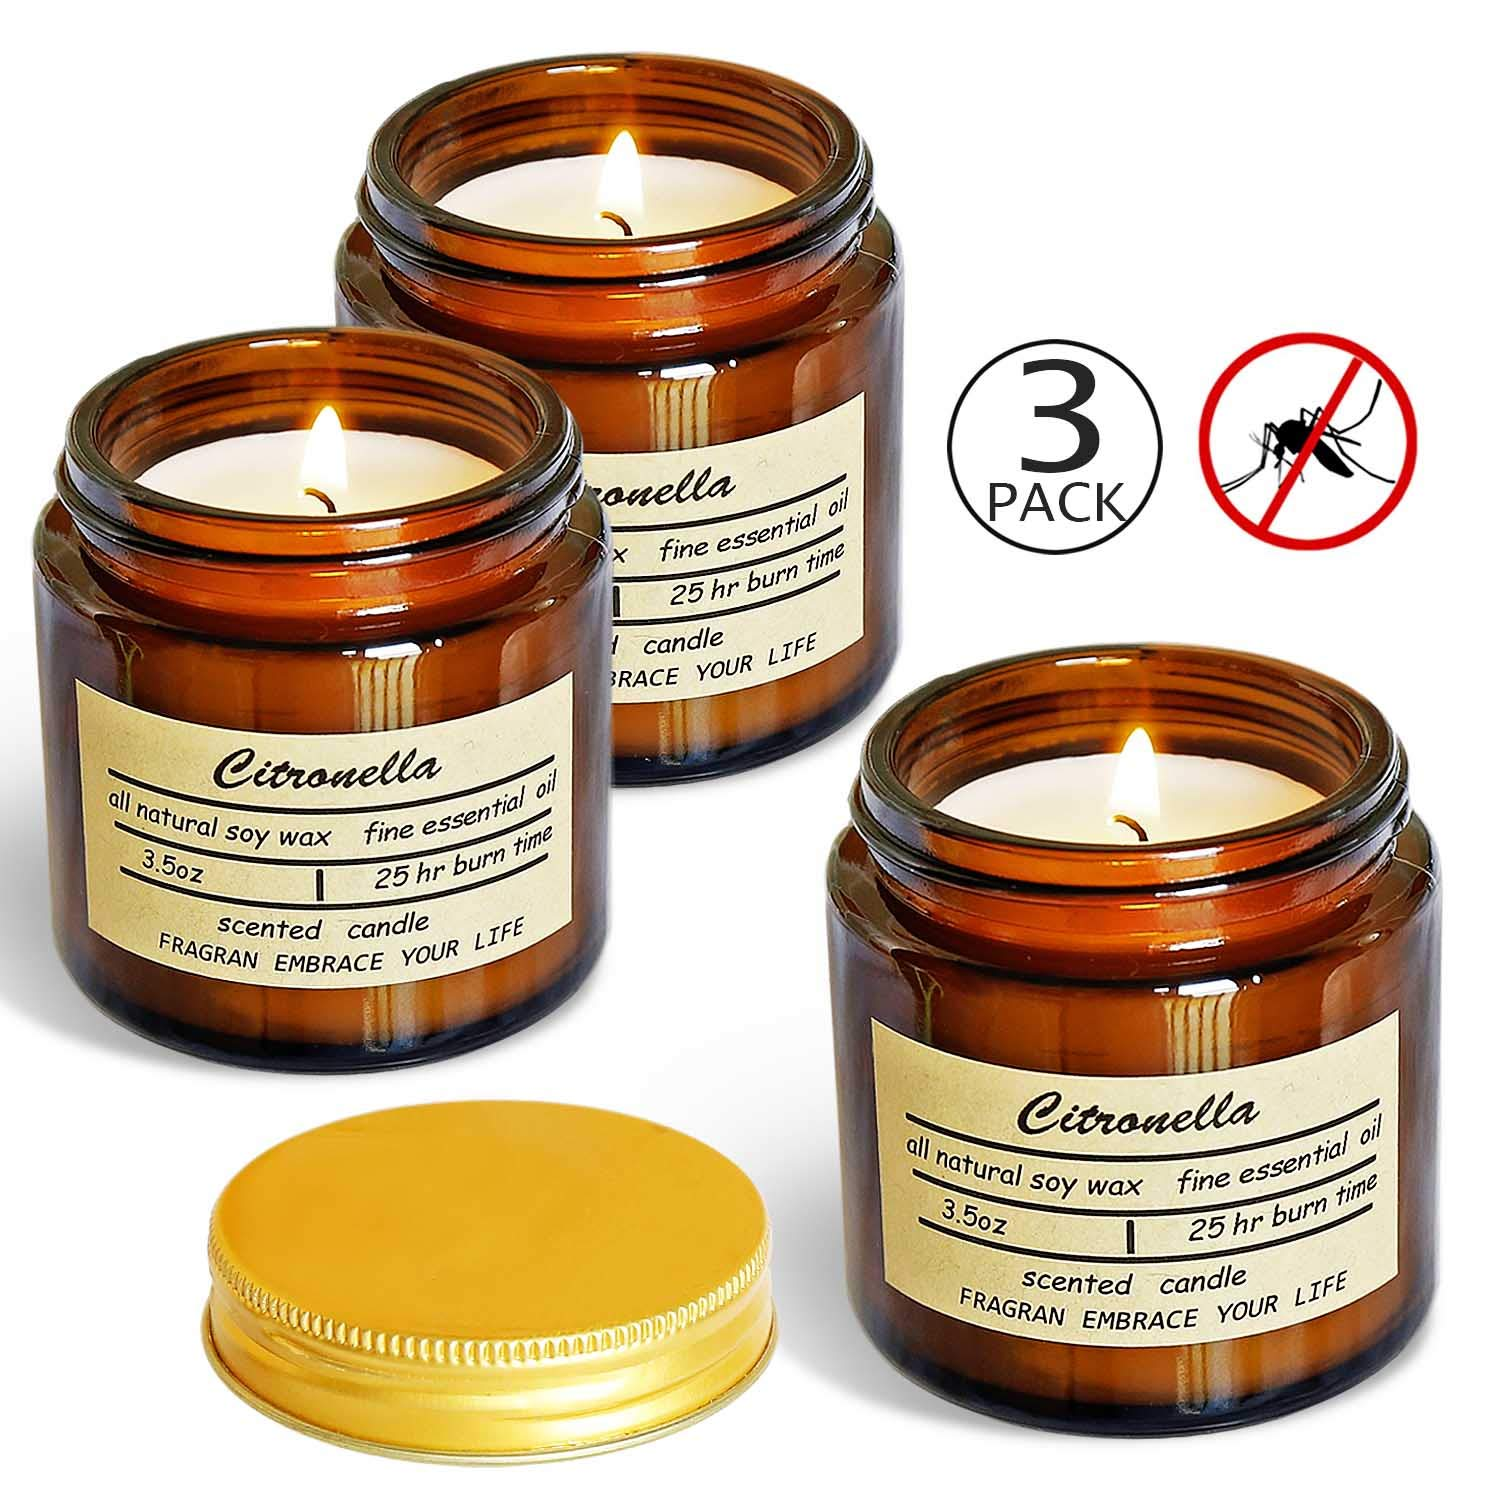 Vanrener Citronella Candles, Jar Candle, Indoor and Outdoor, 25 Hours Burn 100% Soy Wax Glass Candle (3 Pack) by Vanrener